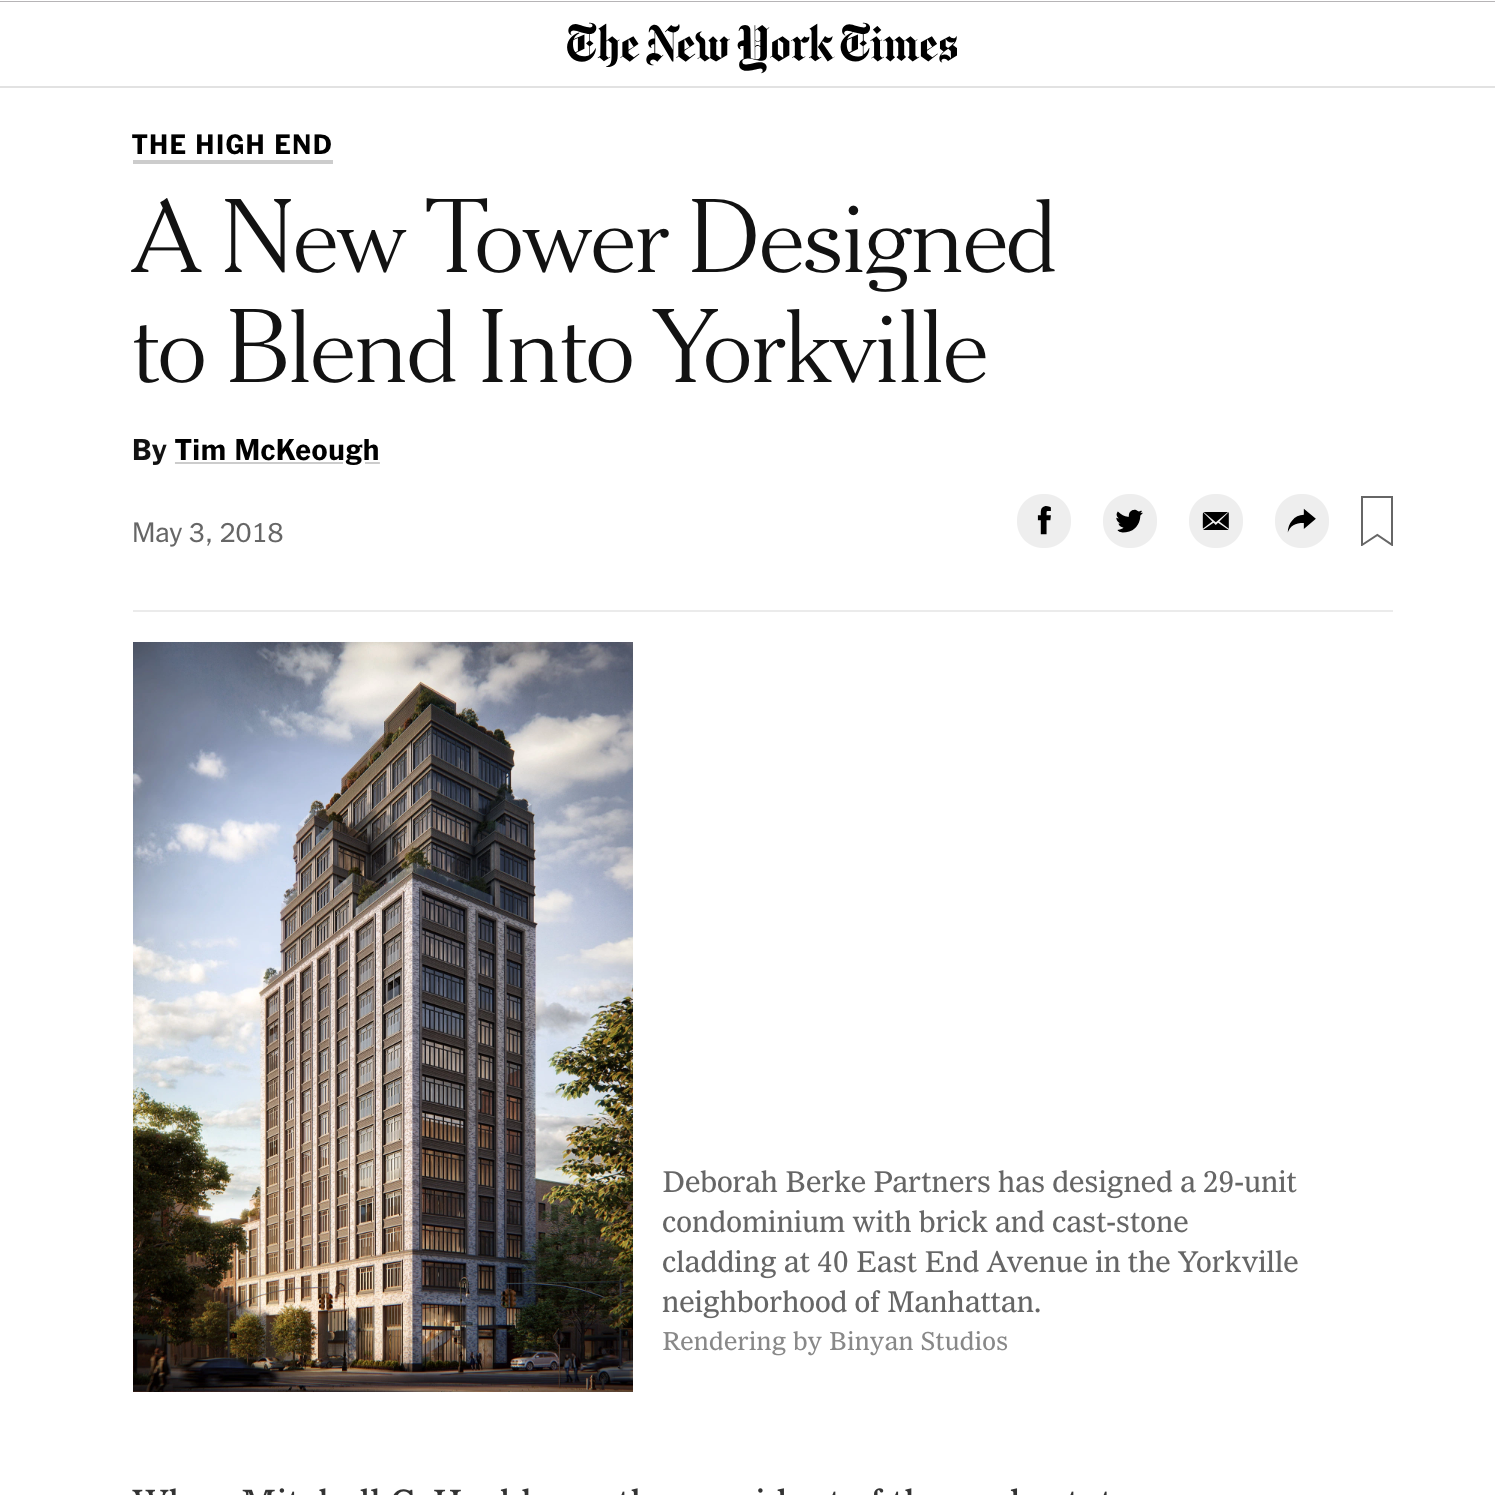 40 East End Avenue in New York Times